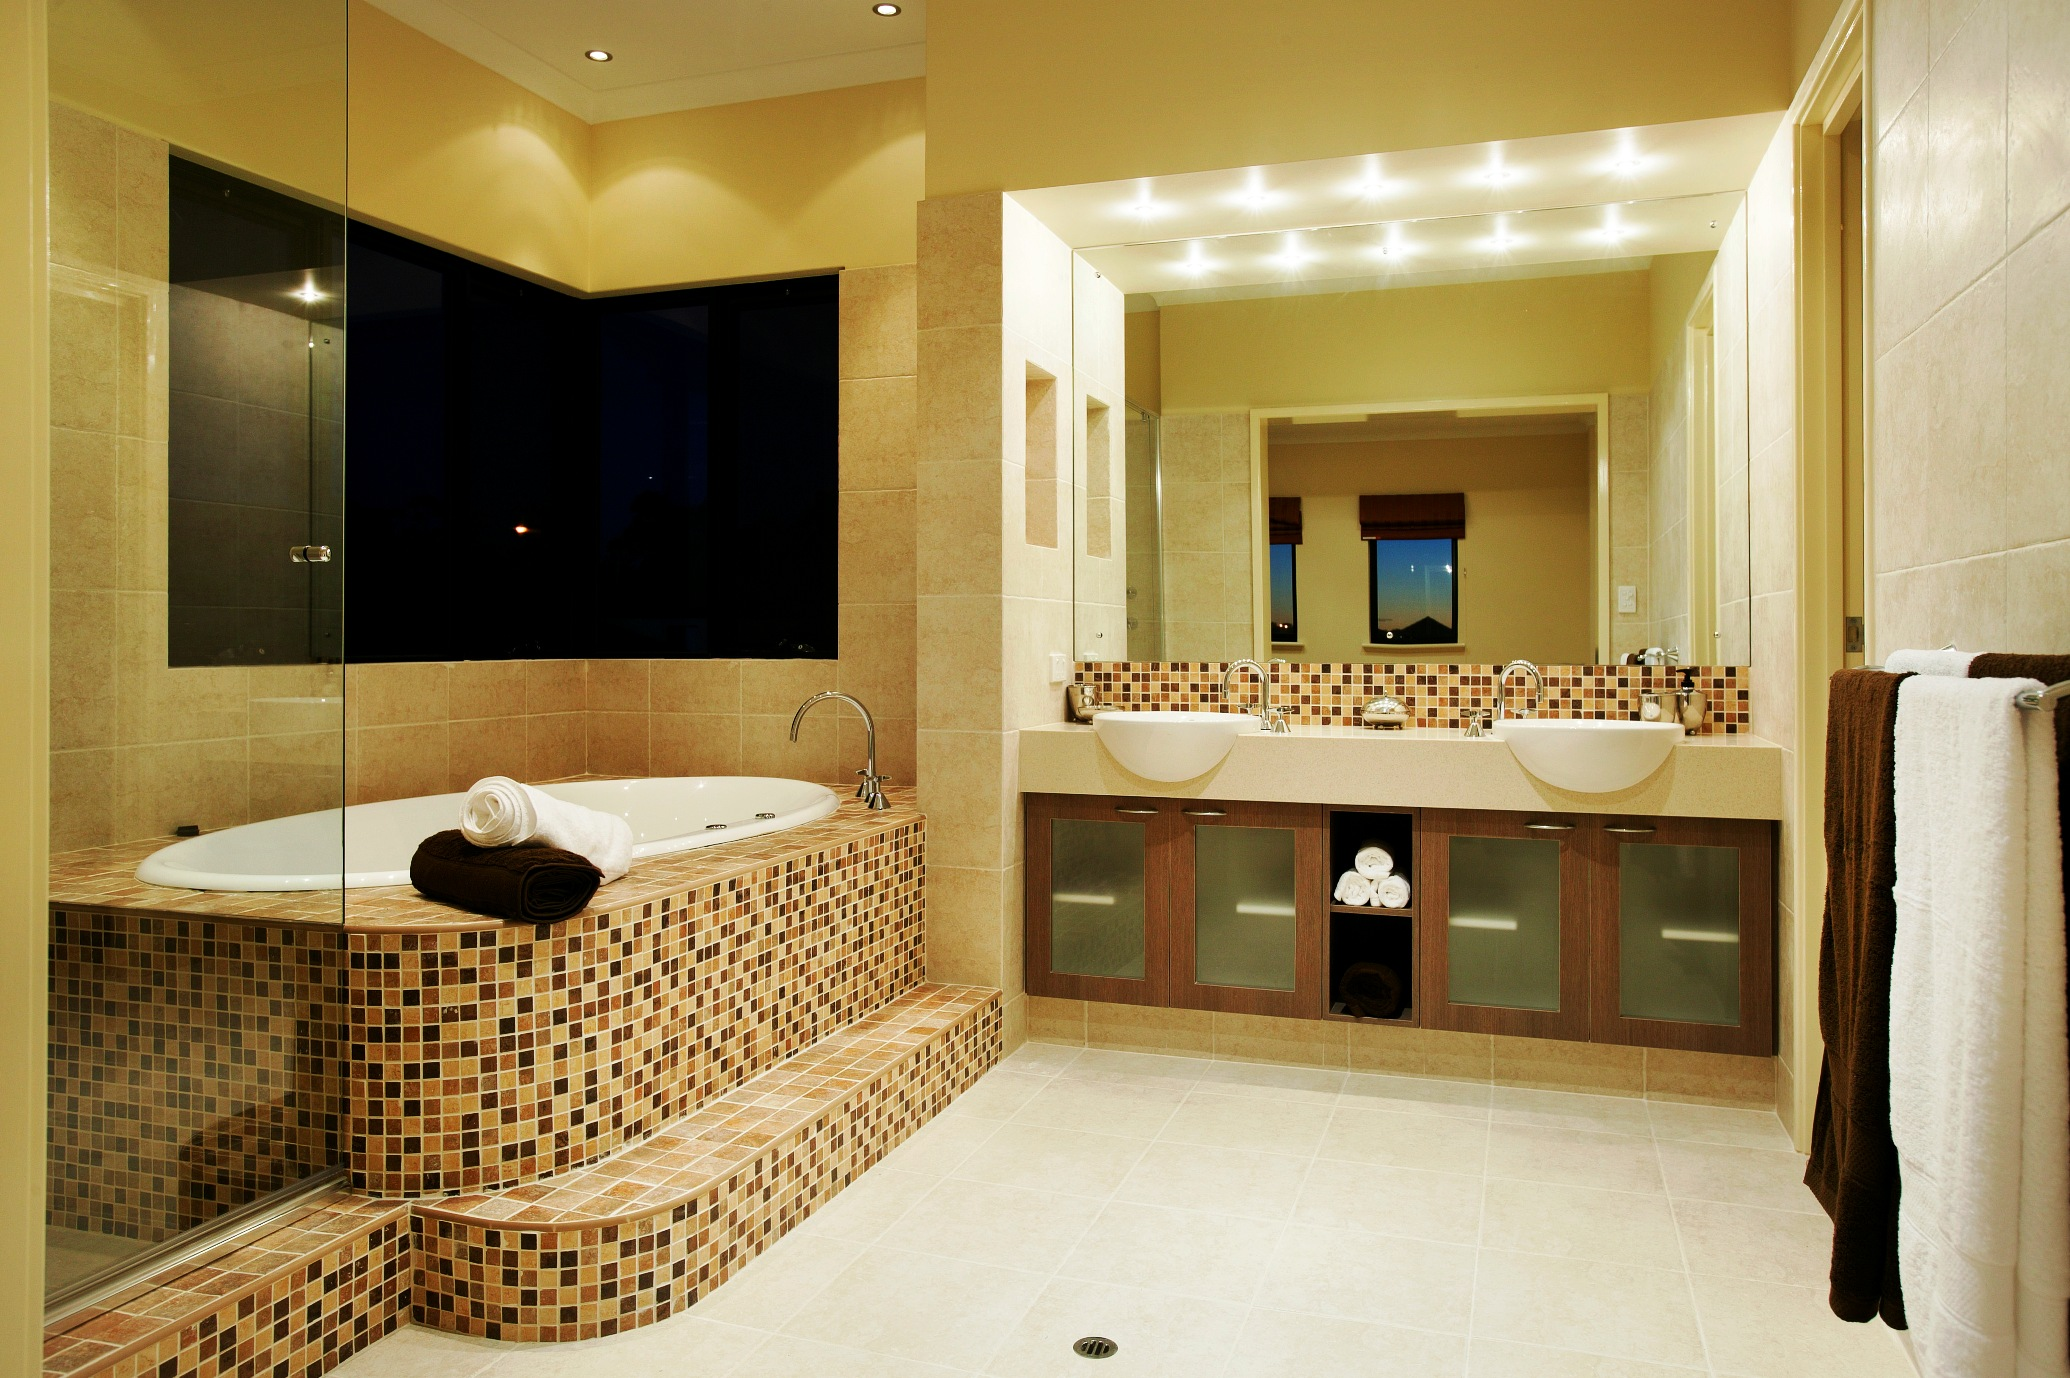 Magnificent Home Interior Bathroom Designs 2070 x 1378 · 789 kB · jpeg